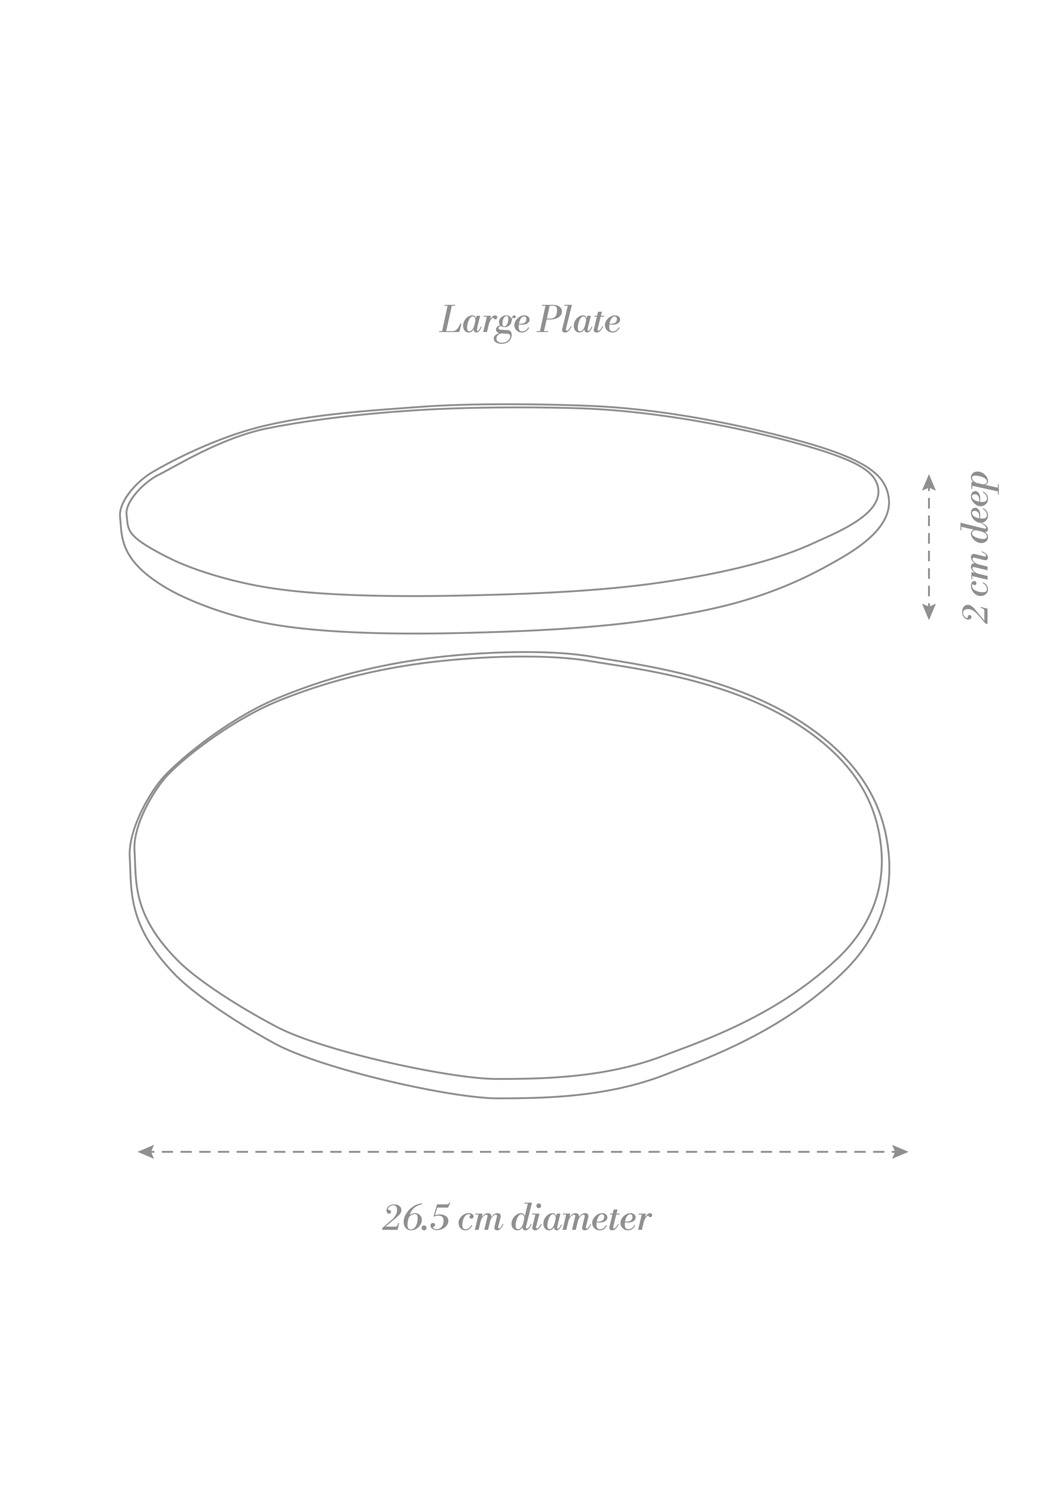 Sashimi Large Plate Product Diagram